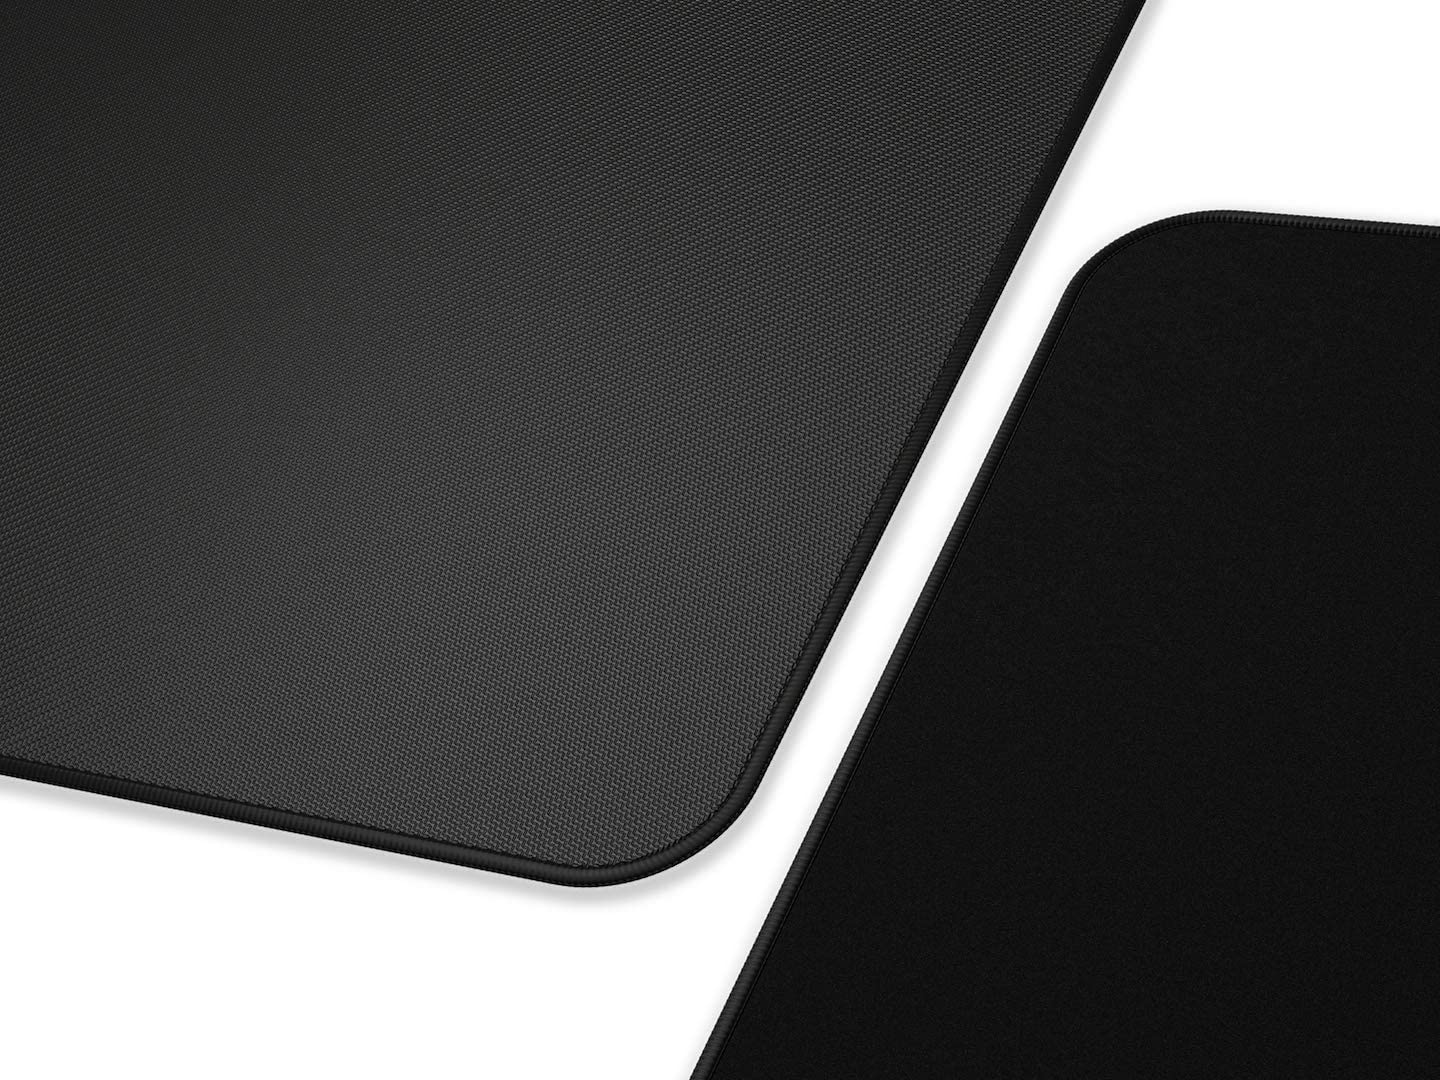 14x24 XLarge Stitched Edges G-P-Stealth Stealth Edition Large Wide Glorious XL Extended Gaming Mouse Mat//Pad Black Cloth Mousepad